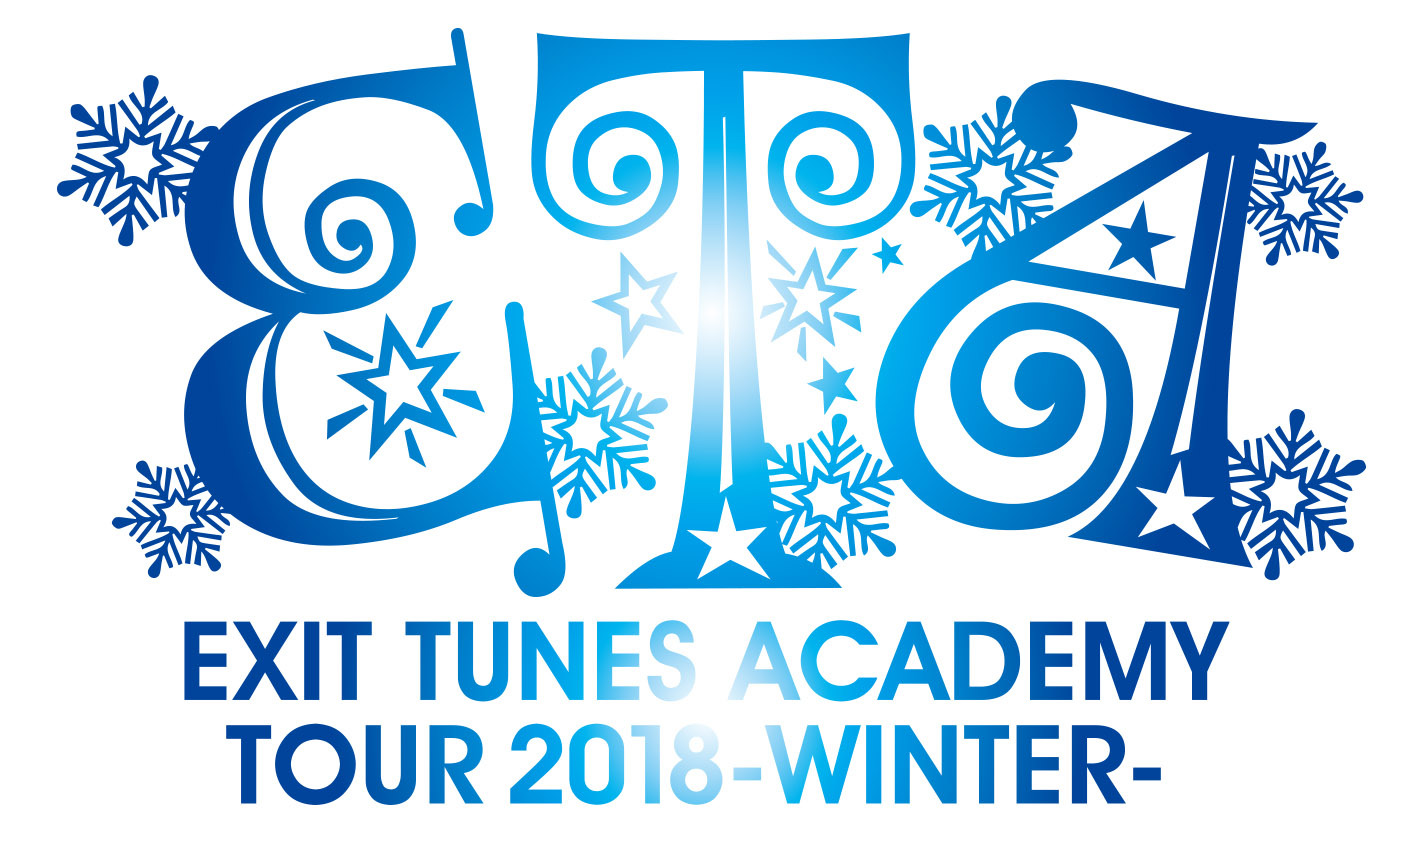 EXIT TUNES ACADEMY TOUR 2018 -WINTER-